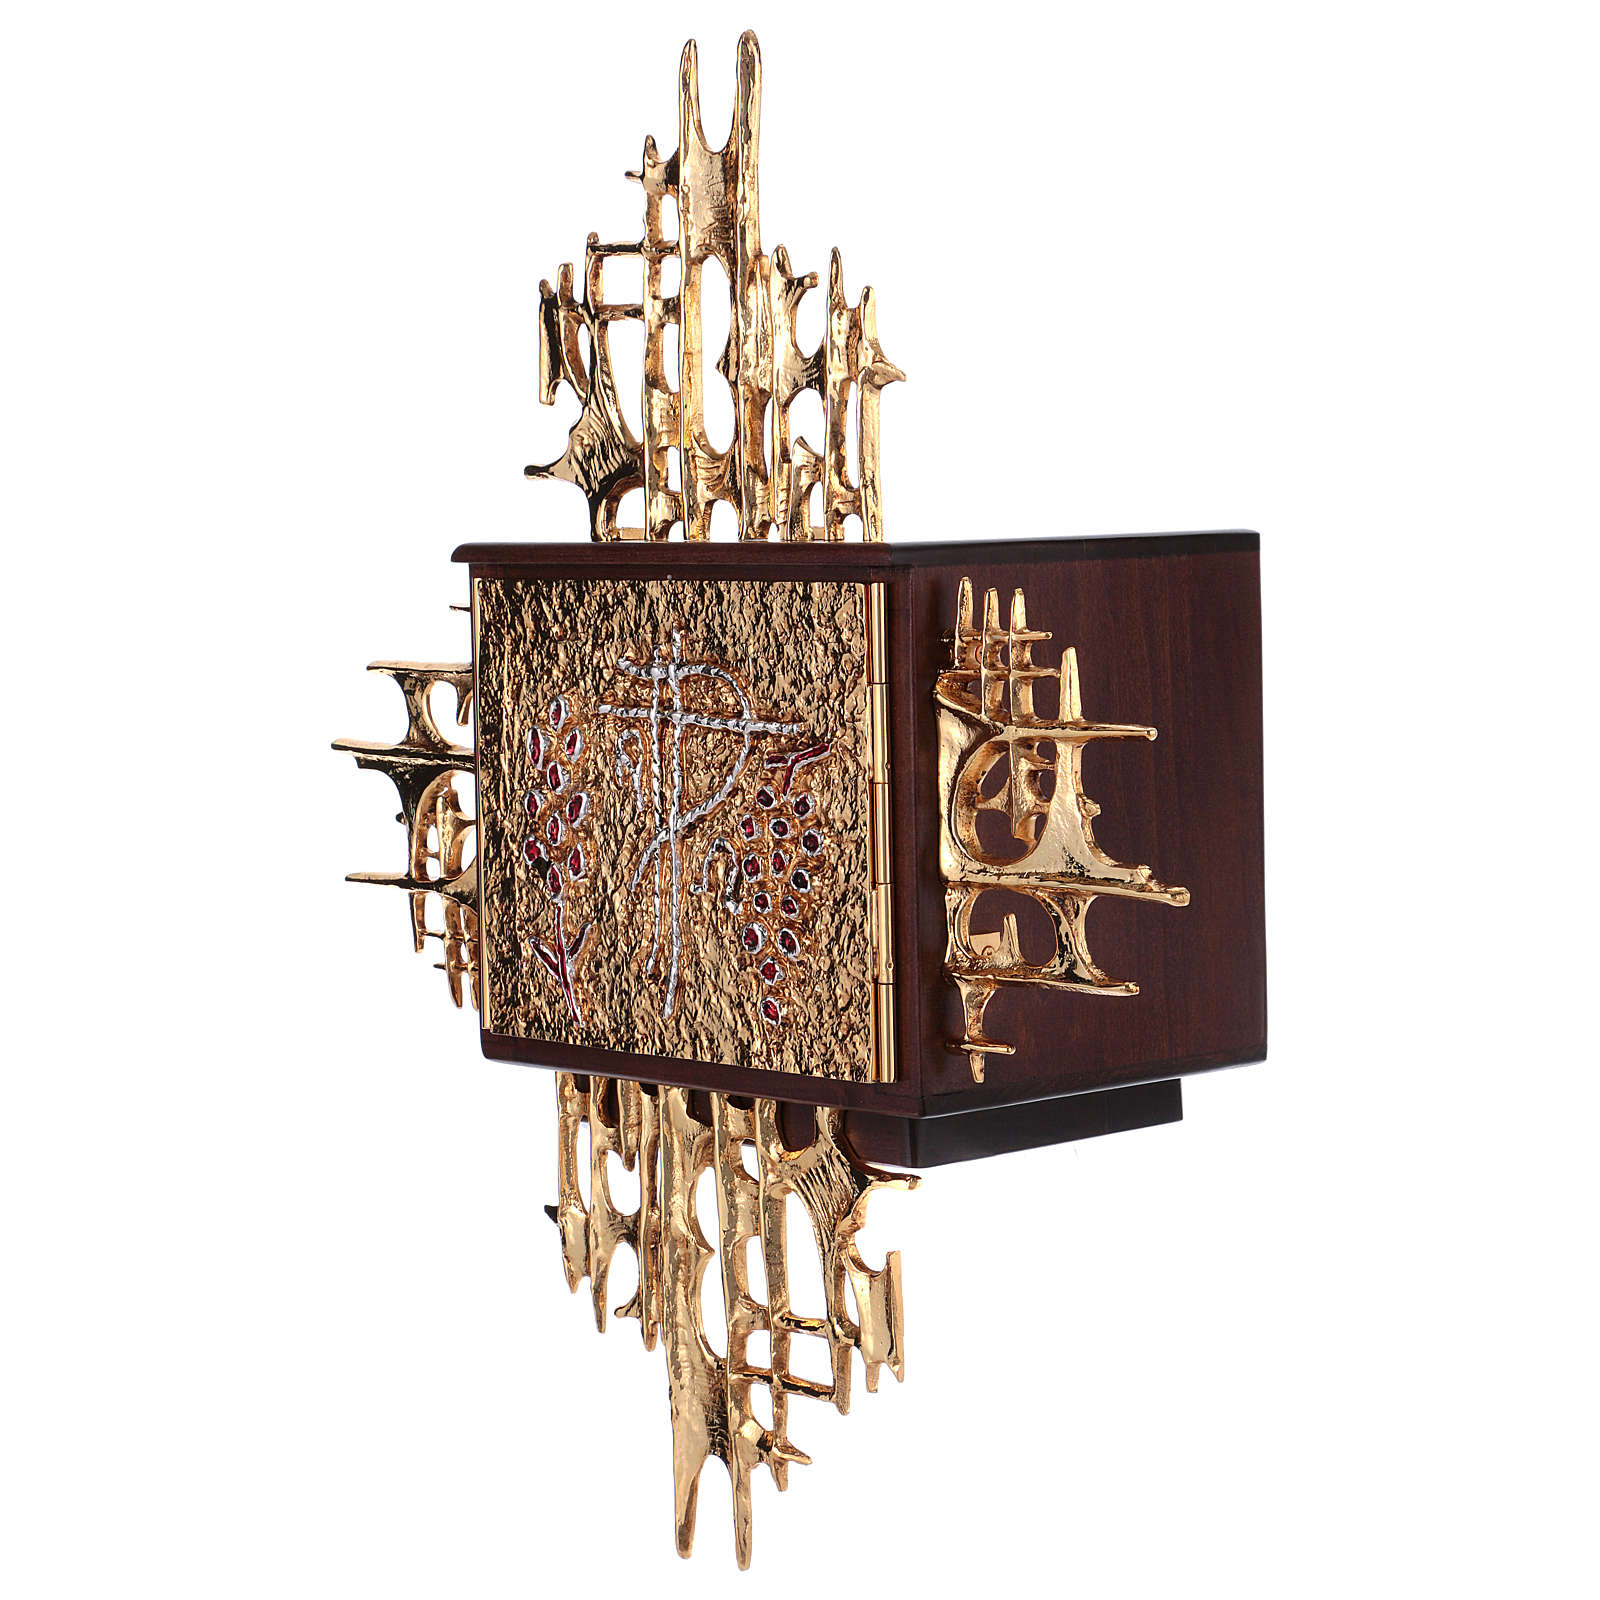 Wall tabernacle, wood & gold/silver-plated brass door 4